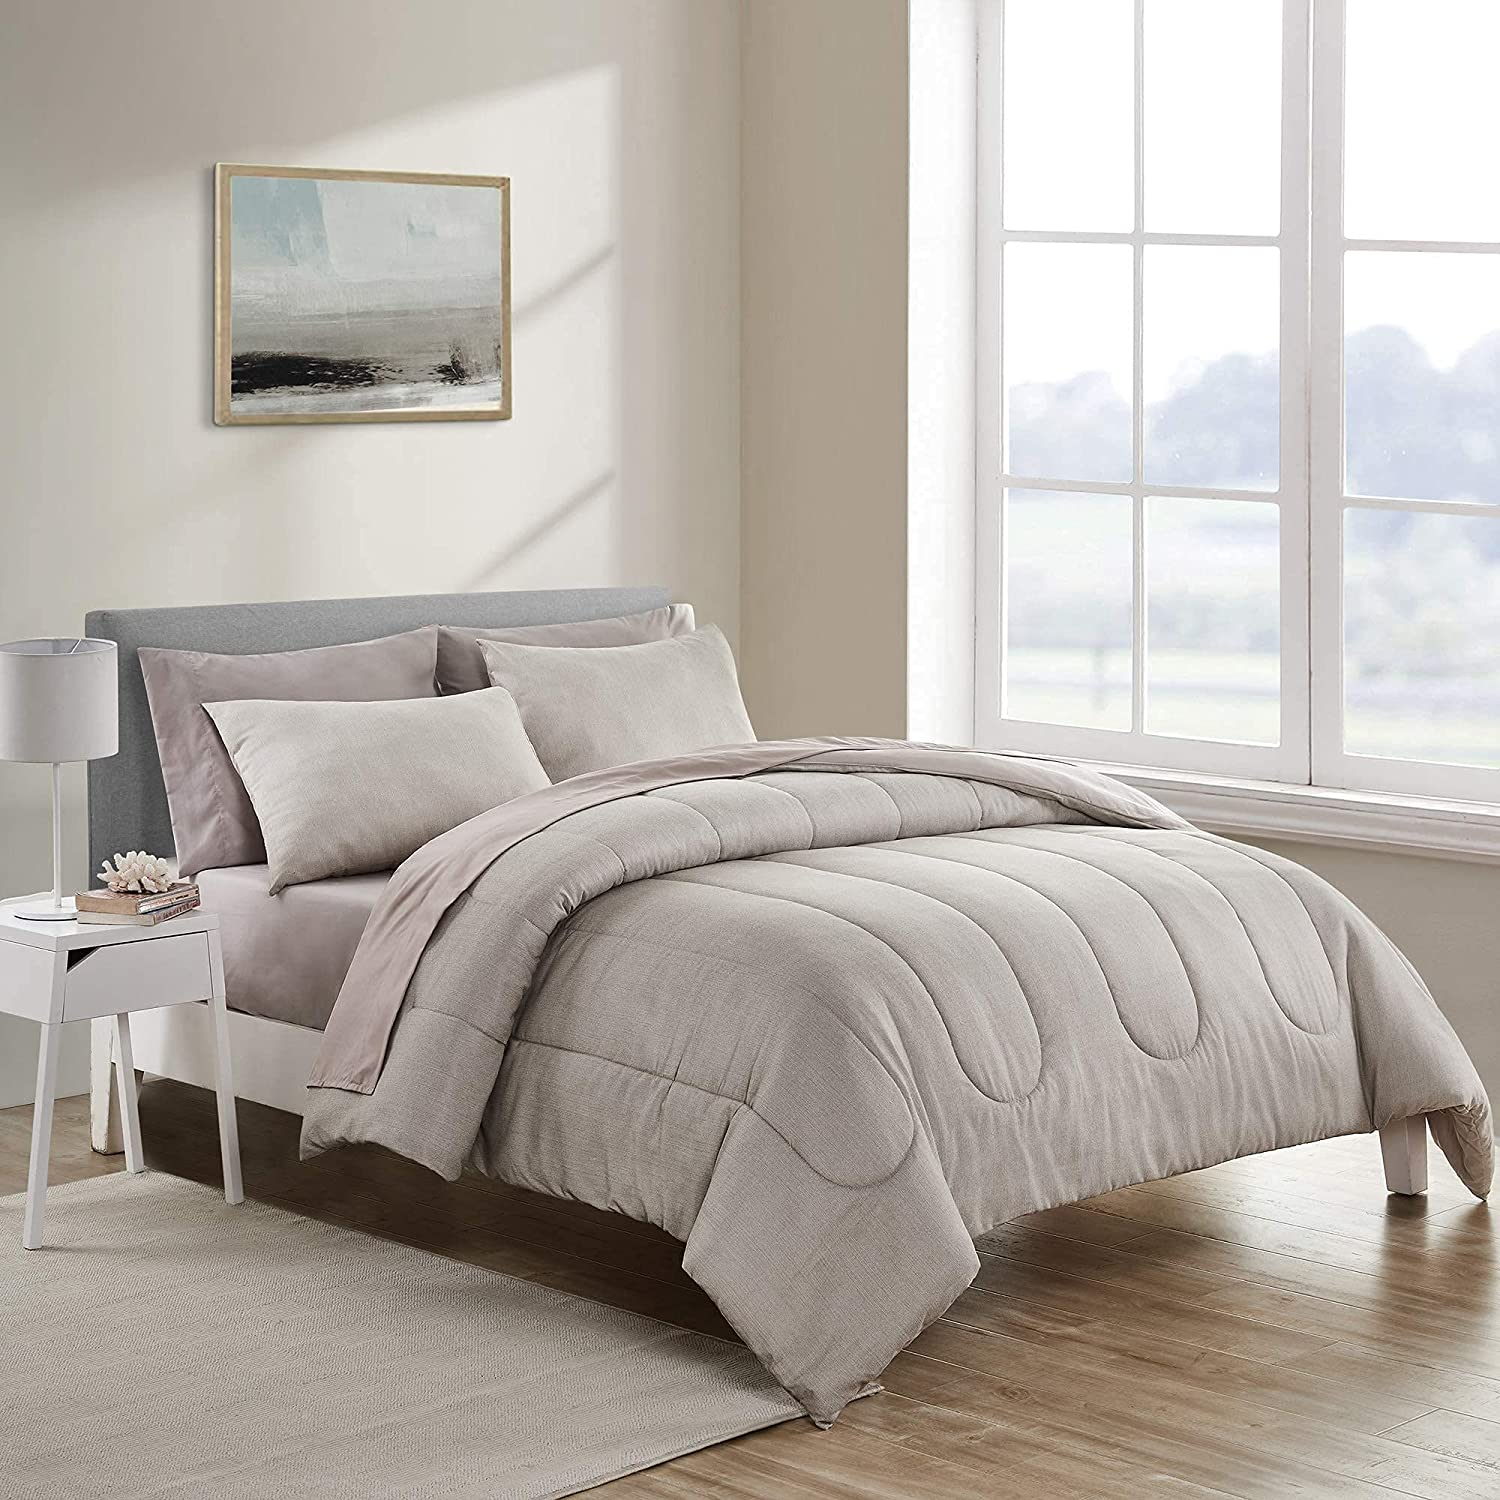 SHALALA NEW YORK Under blast sales Comforter Set Clearance SALE Limited time Taupe King Bed-in-A-Bag 7-P Khaki